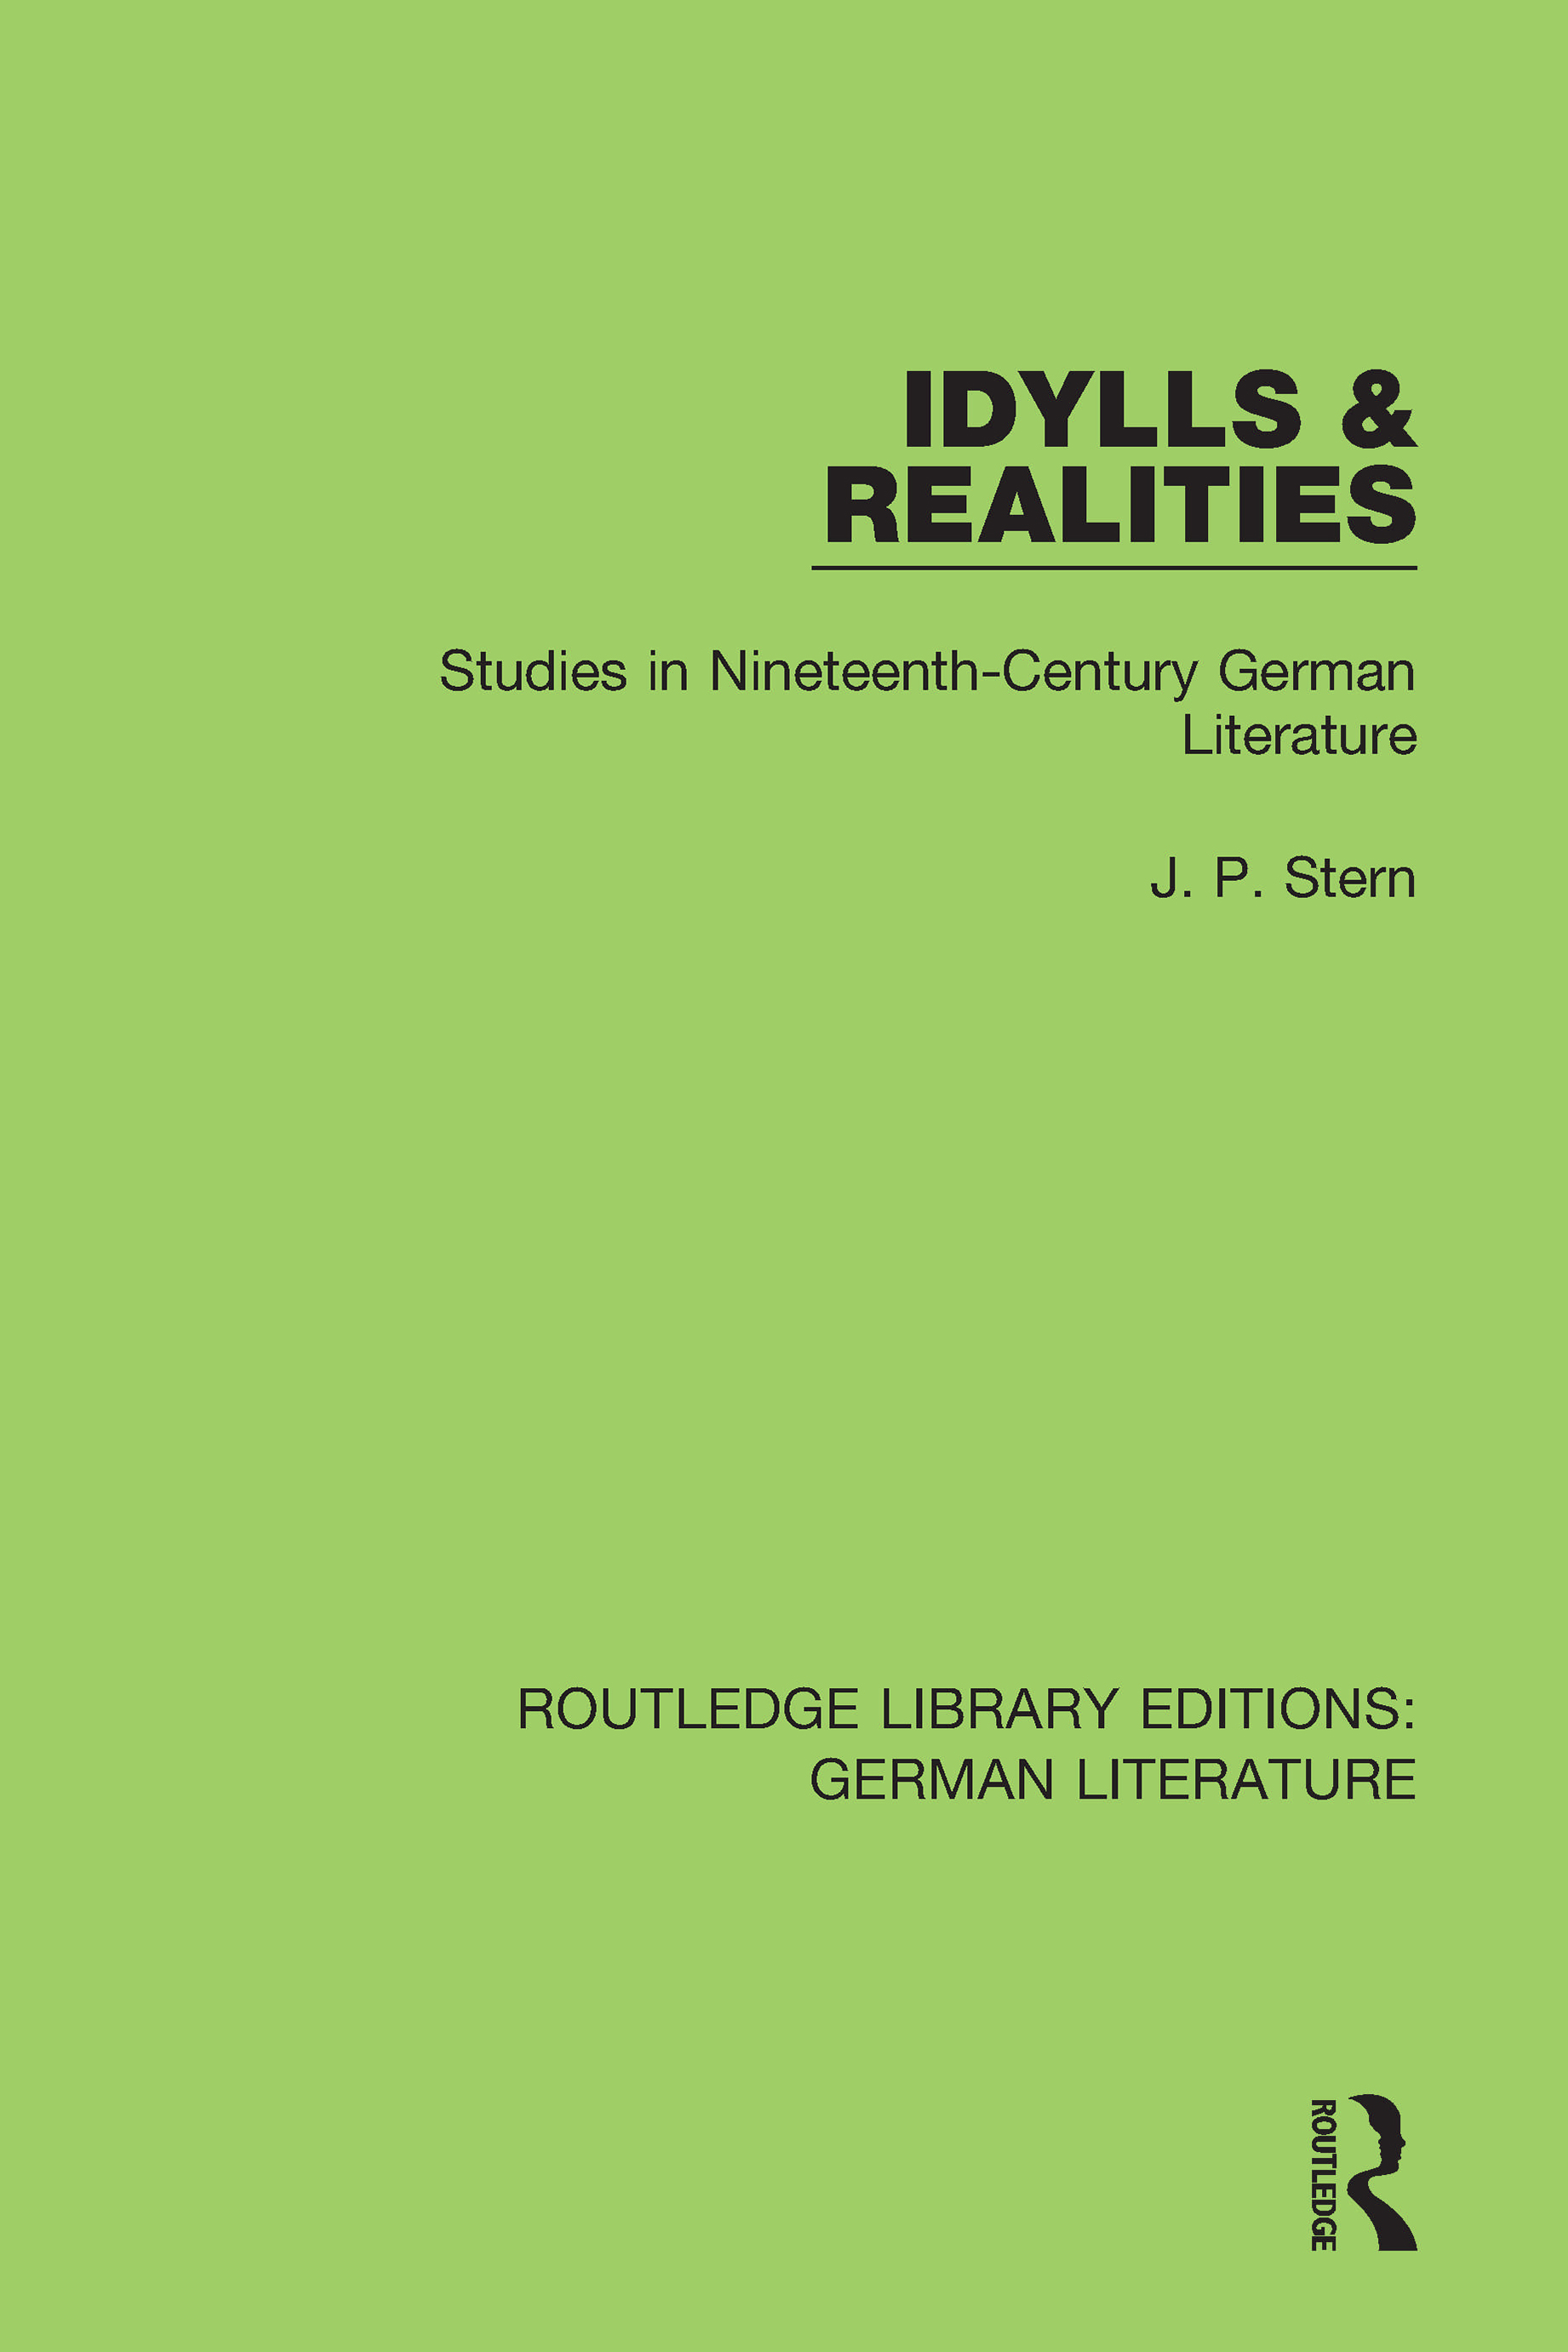 Idylls & Realities: Studies in Nineteenth-Century German Literature book cover